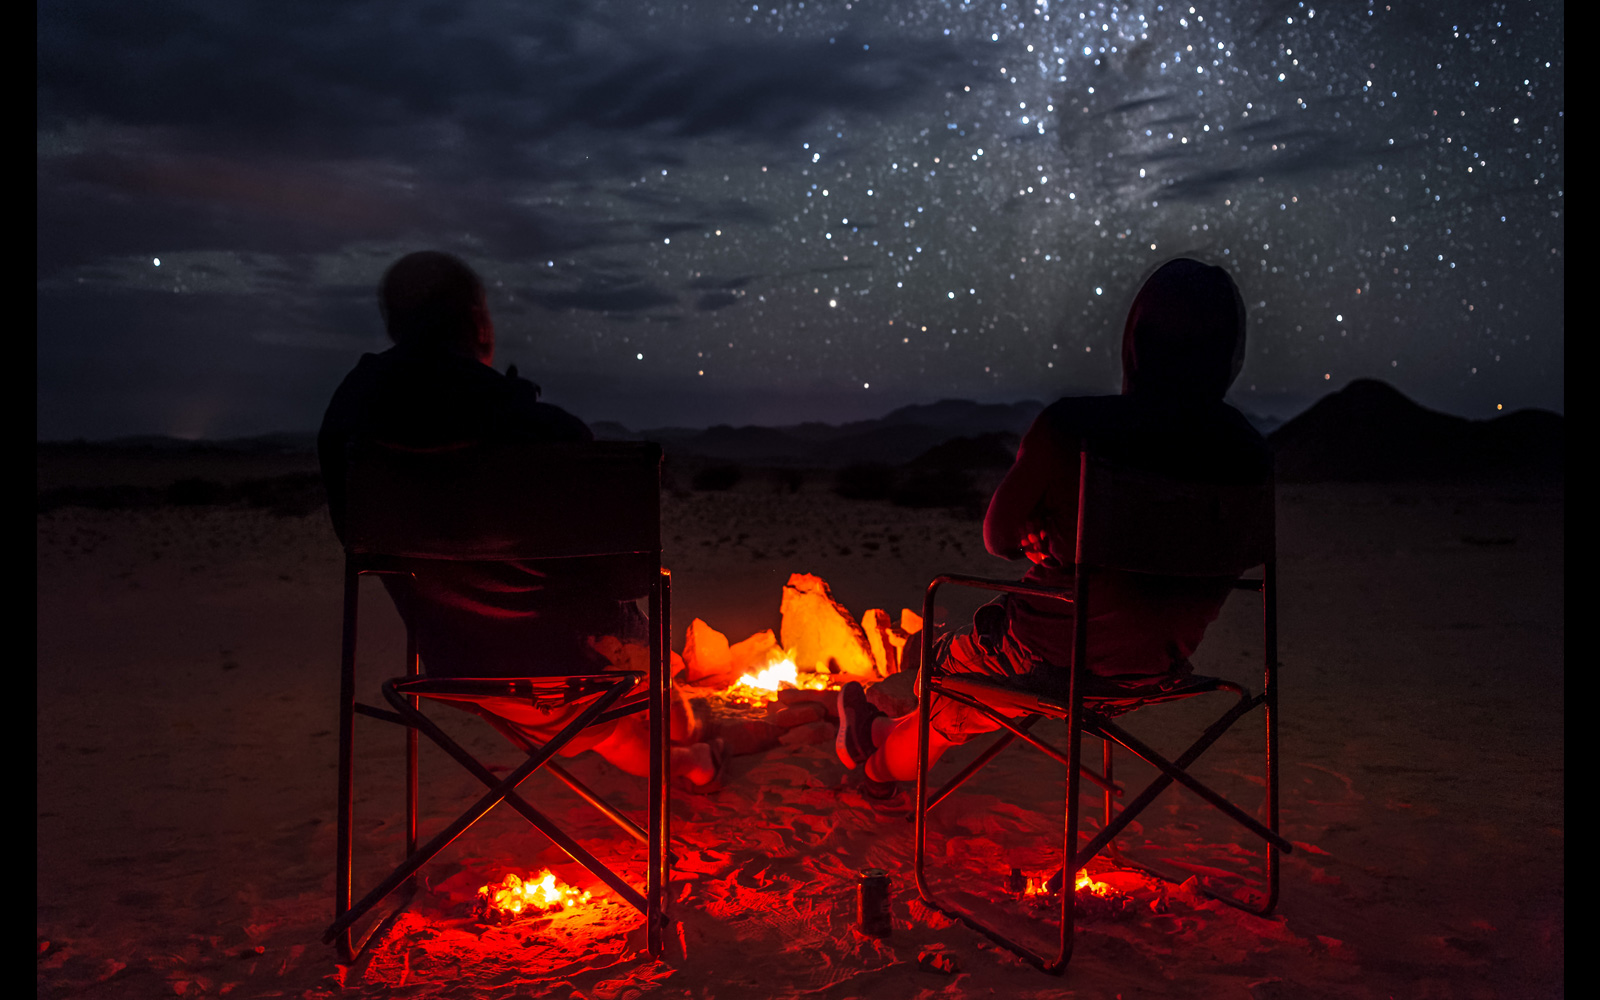 """Starry night with heated seats"" in Desolation Valley along the Huab River, Namibia © Denis Roschlau"